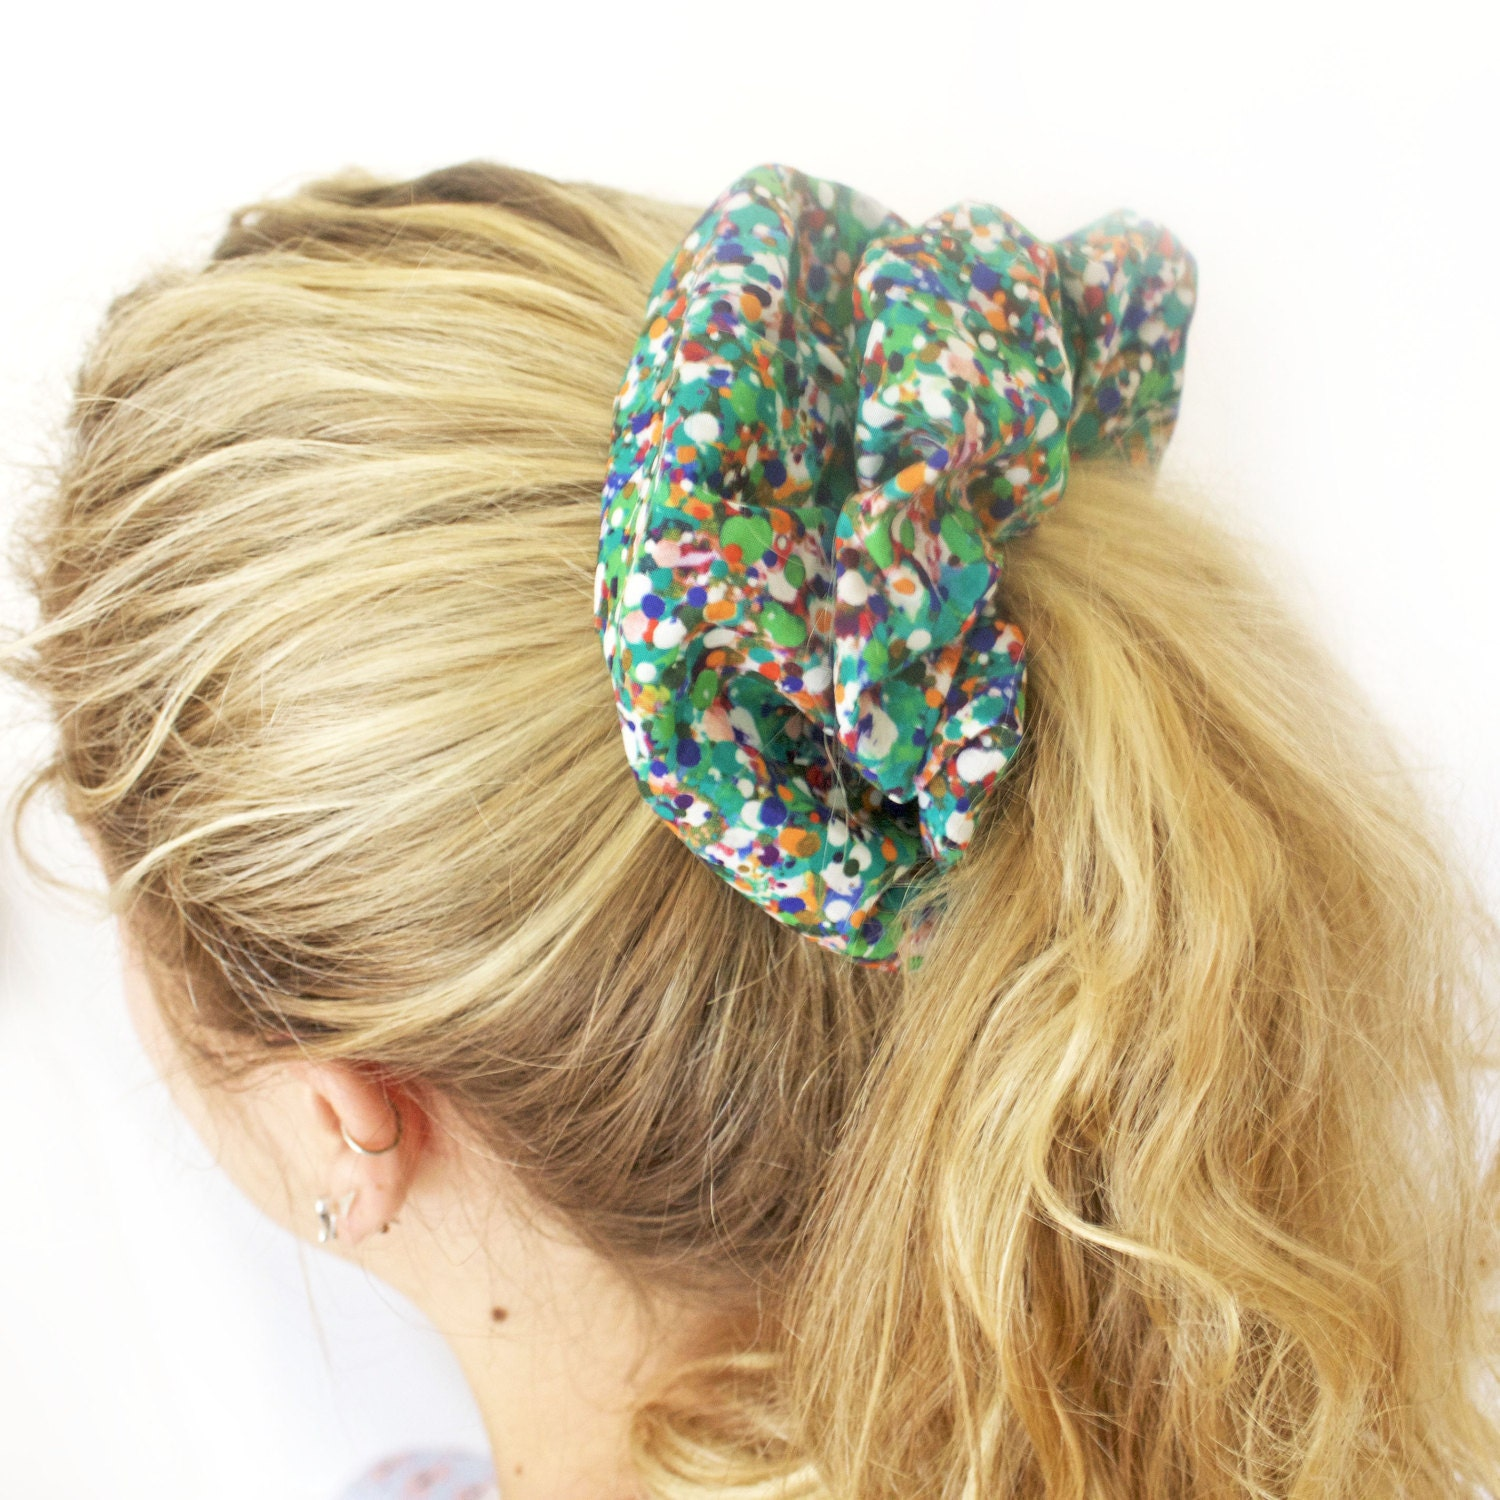 Sally Beauty offers a wide selection of hair accessories to help you manage, care, and get the hair style you want. Find rubber bands, ponytail holders, bobby pins, clips and barrettes, head wraps, and more.